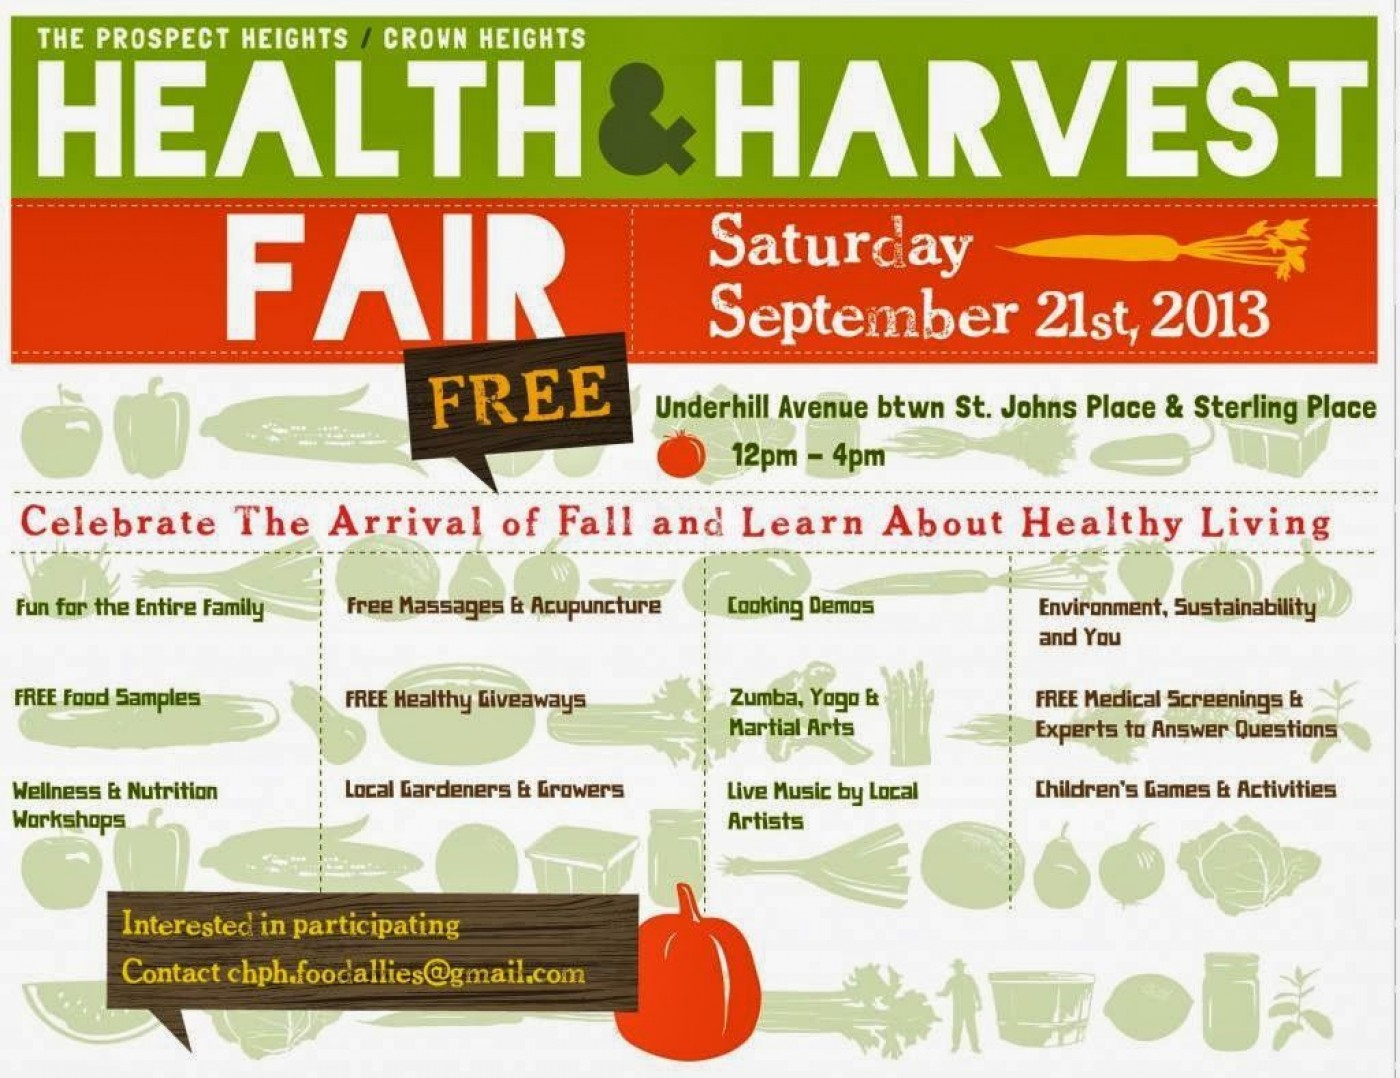 002 Archaicawful Health Fair Flyer Template High Resolution  And Wellnes Word1400